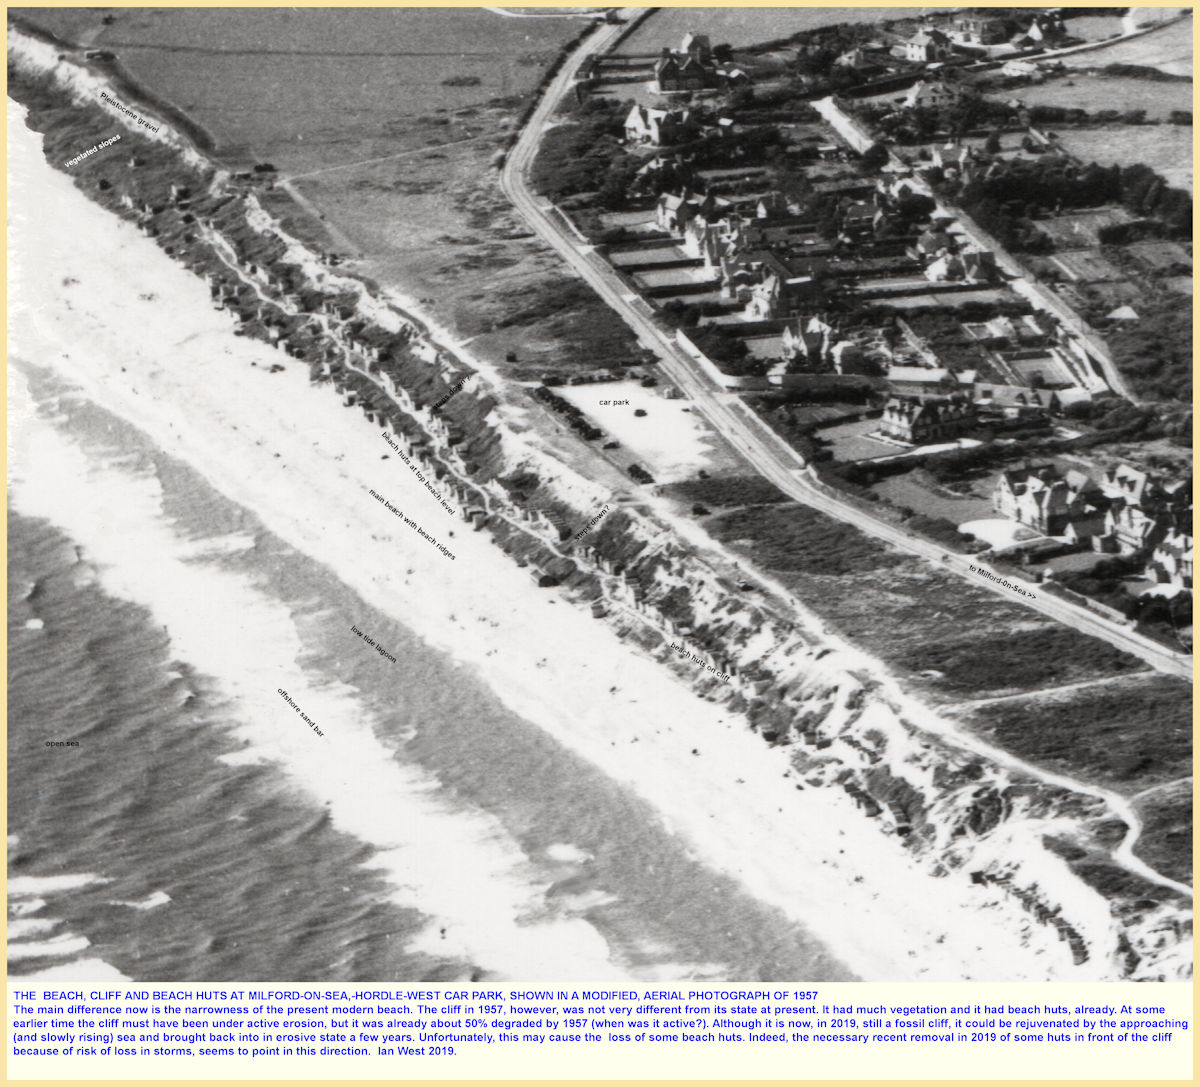 A 1957 aerial photograph of the Milford-Hordle-West car park and adjacent cliff, east of the main Hordle Cliff exposures